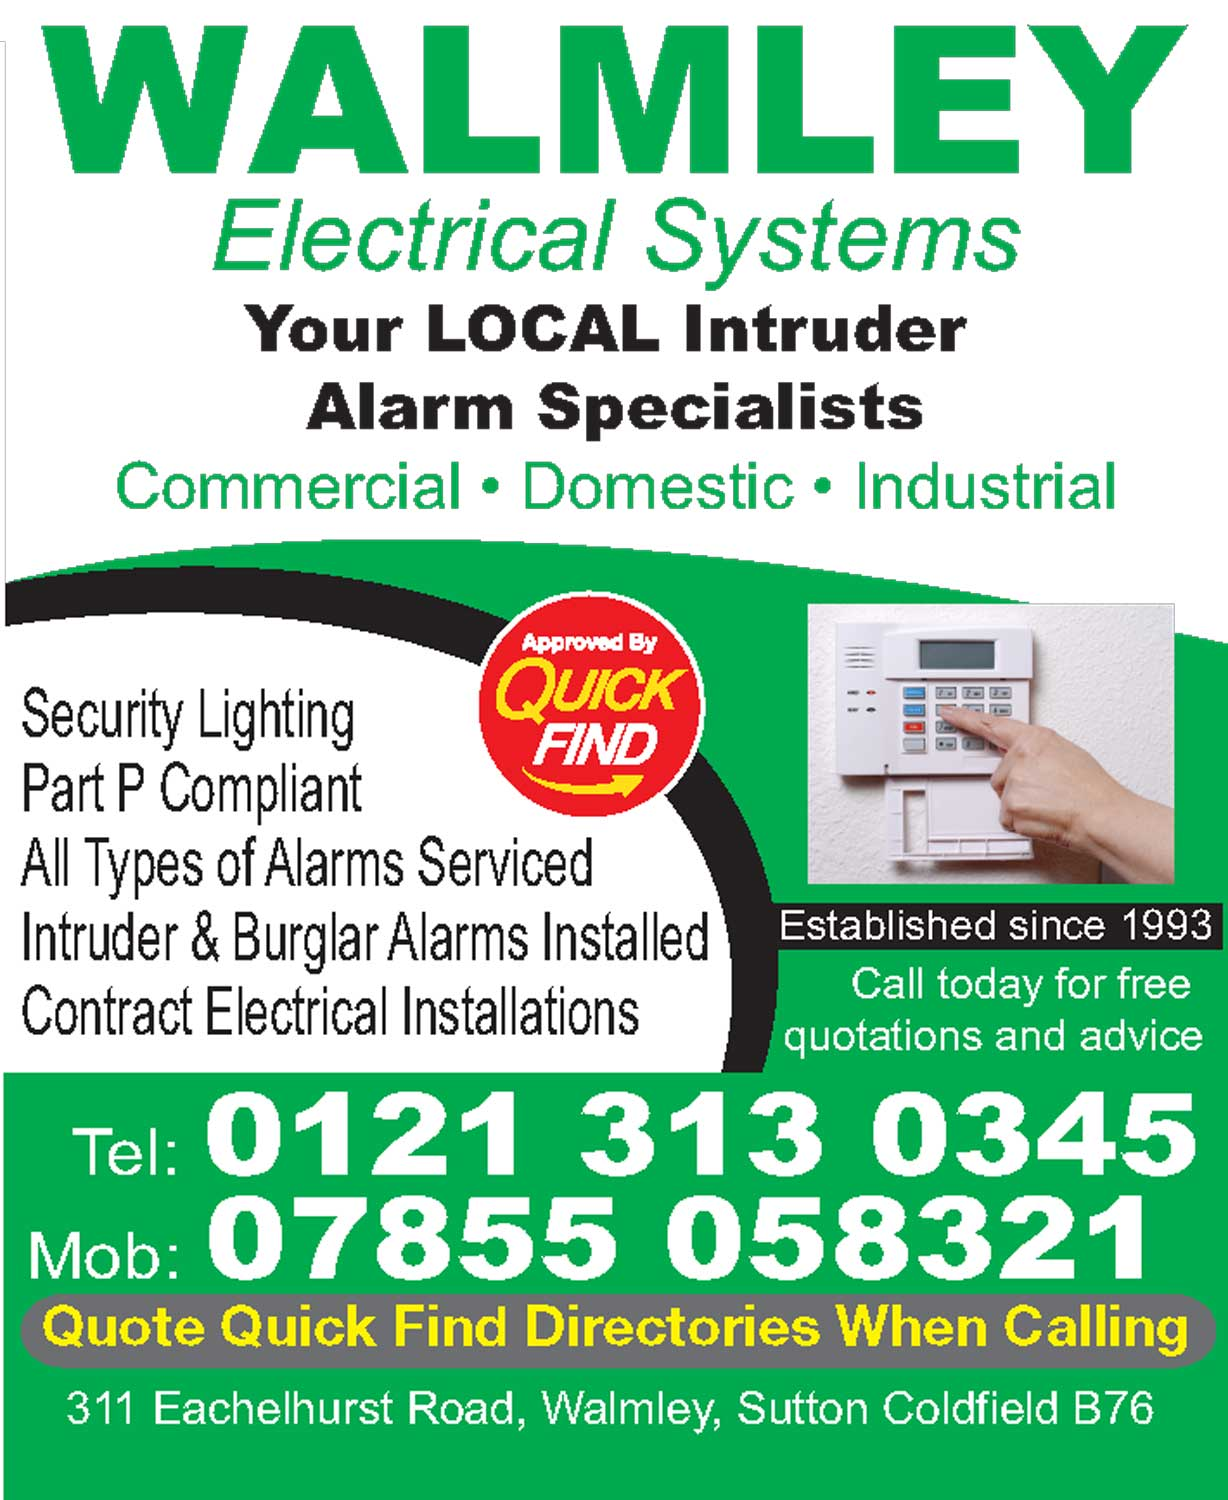 Walmley Electrical Systems